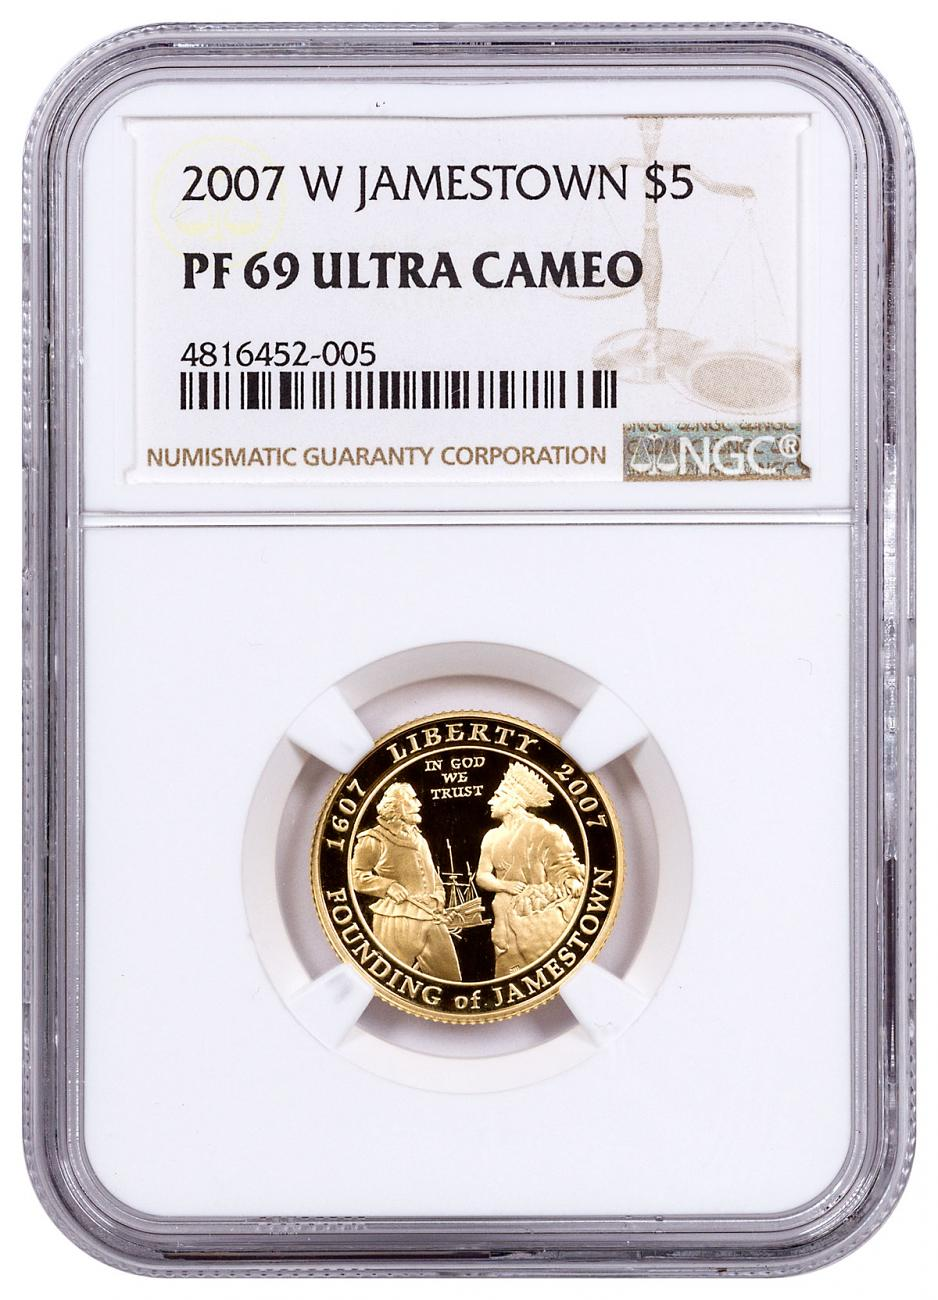 2007-W Jamestown 400th Anniversary $5 Gold Commemorative Proof NGC PF69 UC